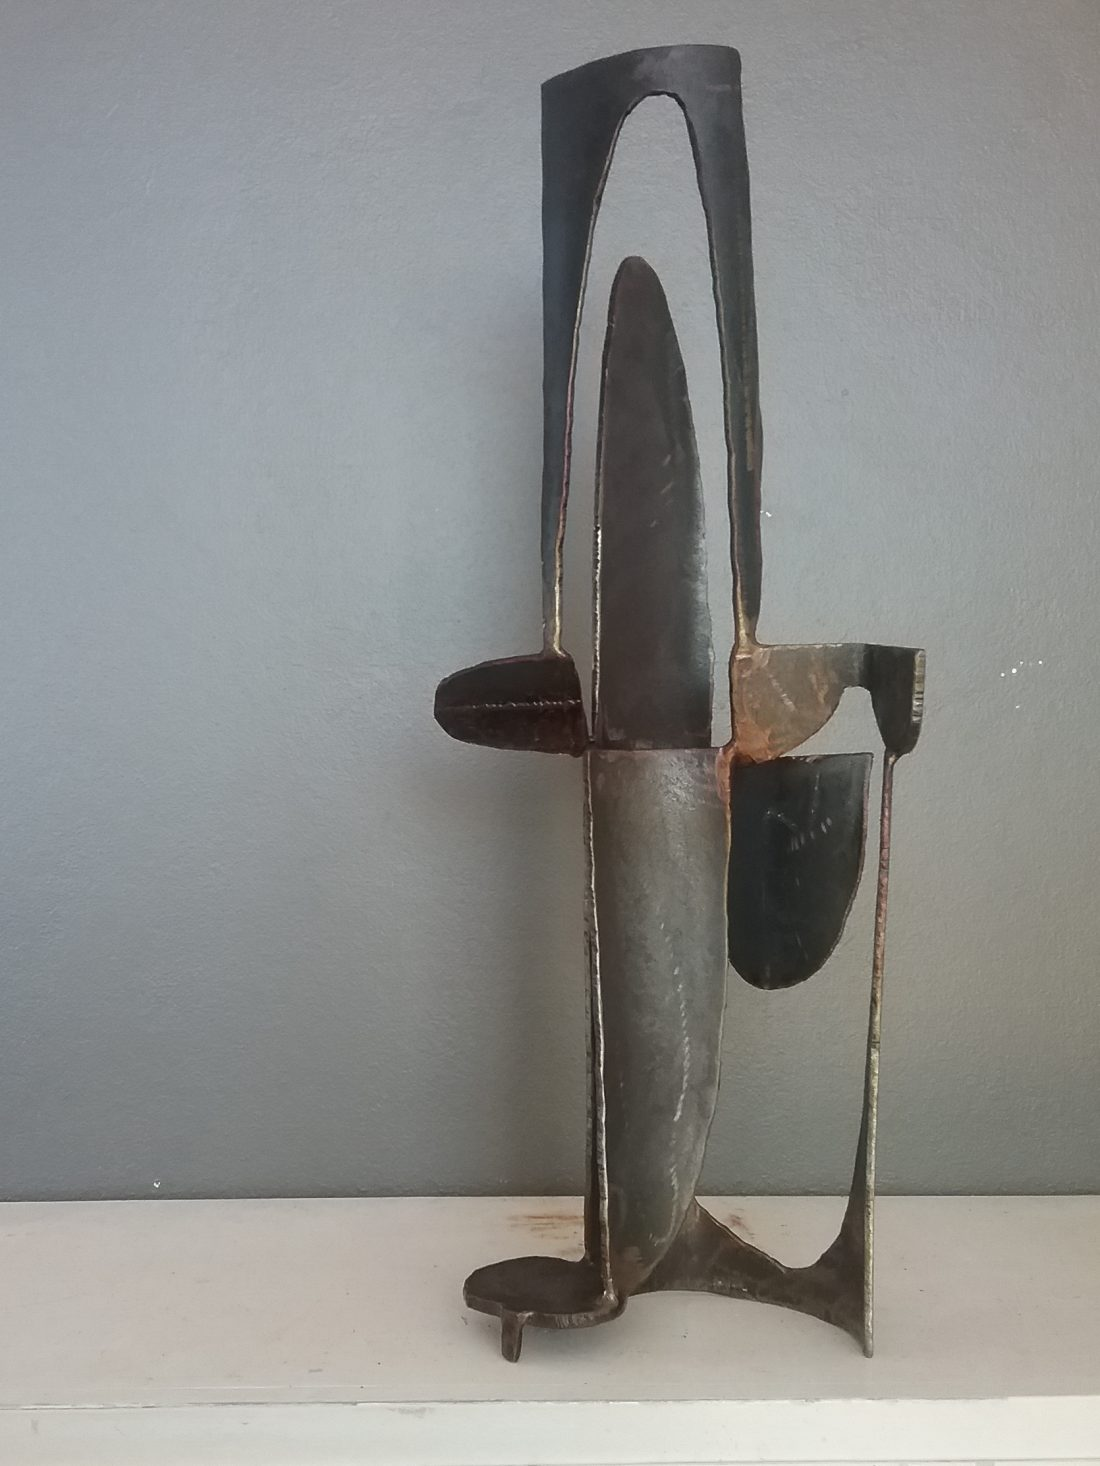 Paul bacon sculpture steel landscape sketch